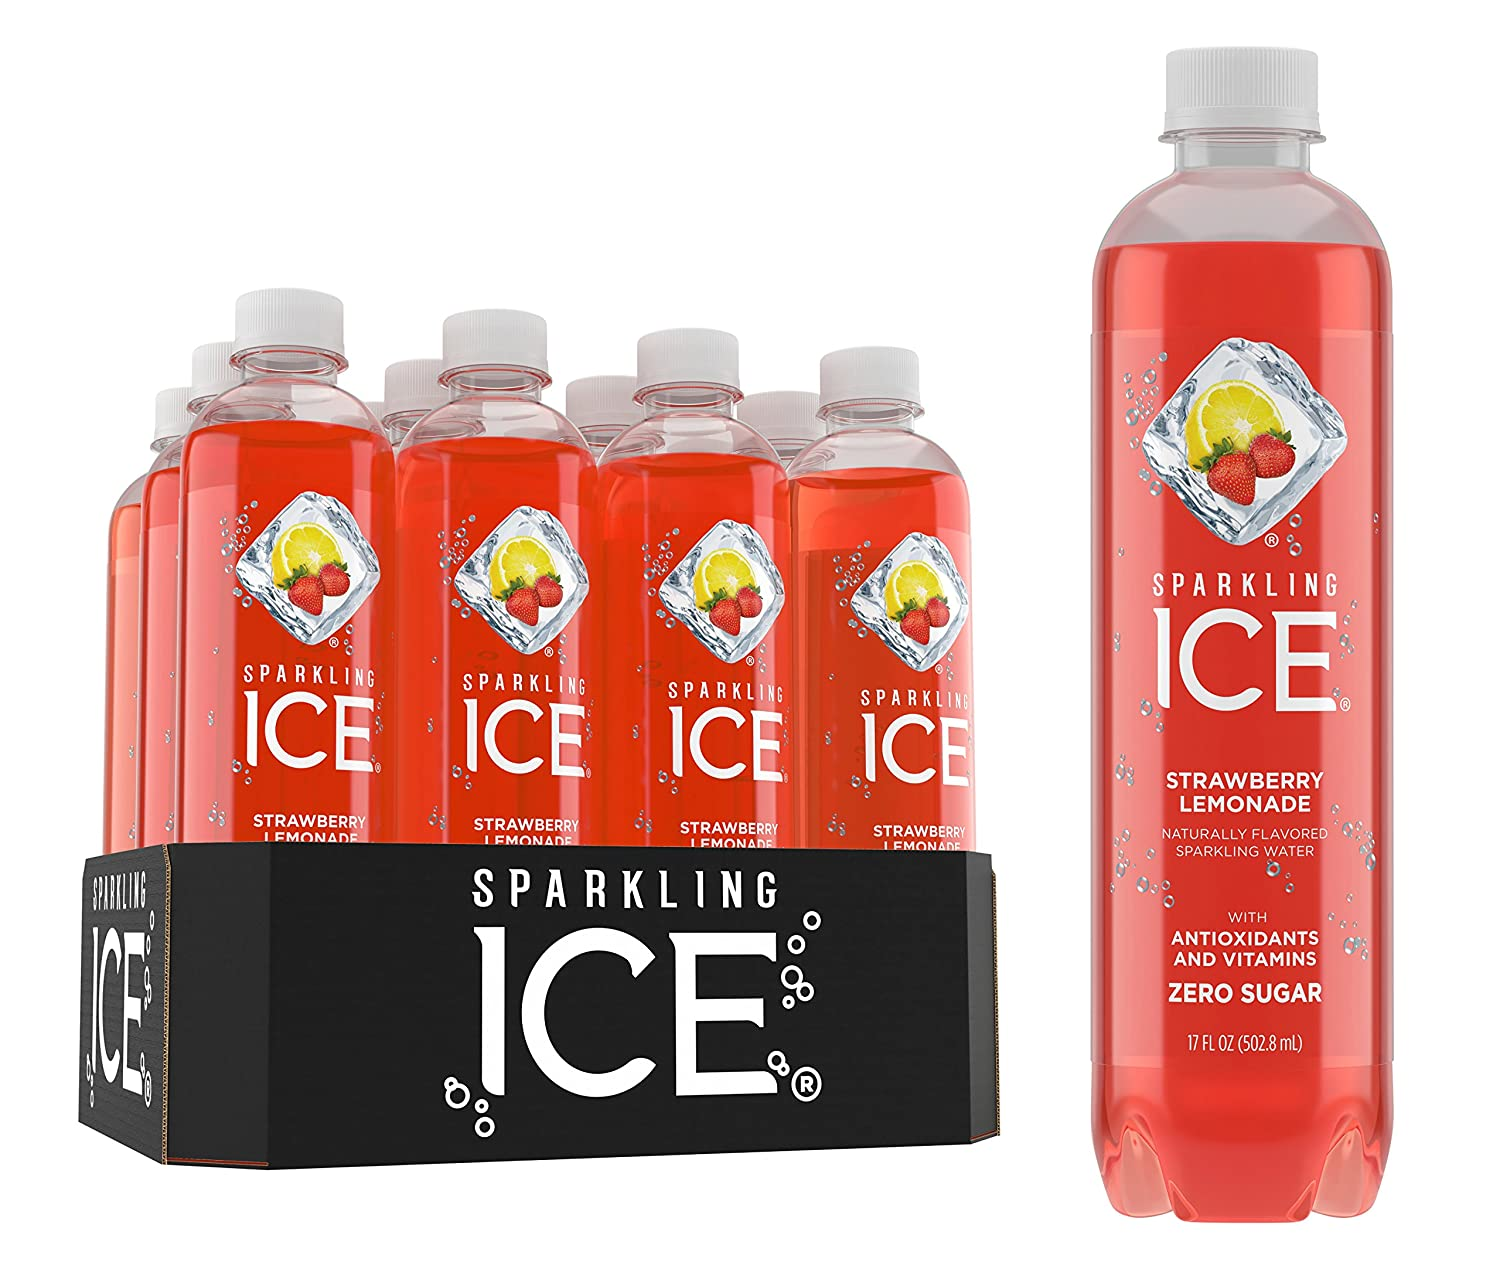 Sparkling ICE Spring Water (Strawberry Lemonade, 17 Oz Pack of 12 Units)